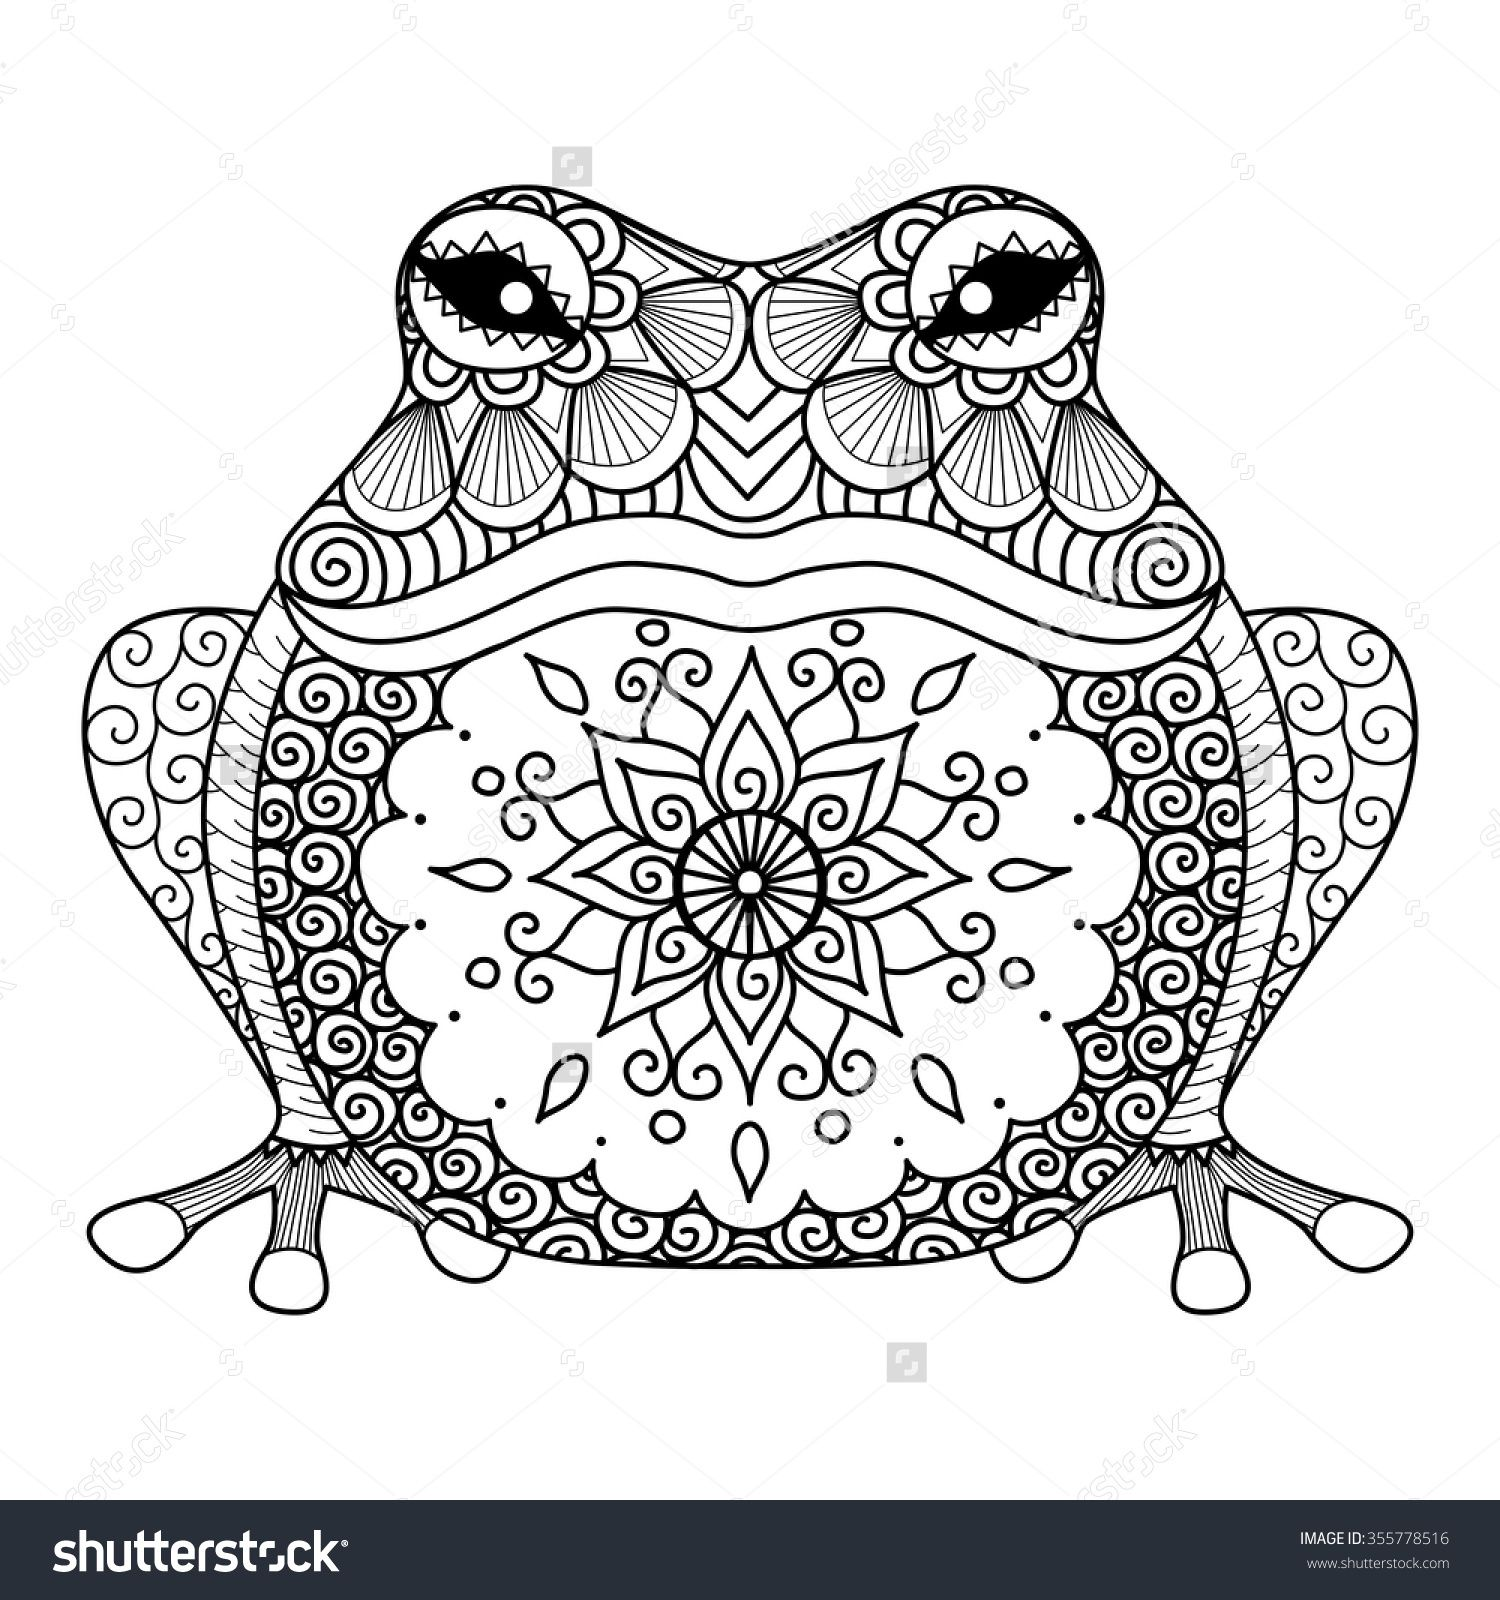 hand drawn zentangle frog for coloring book for shirt